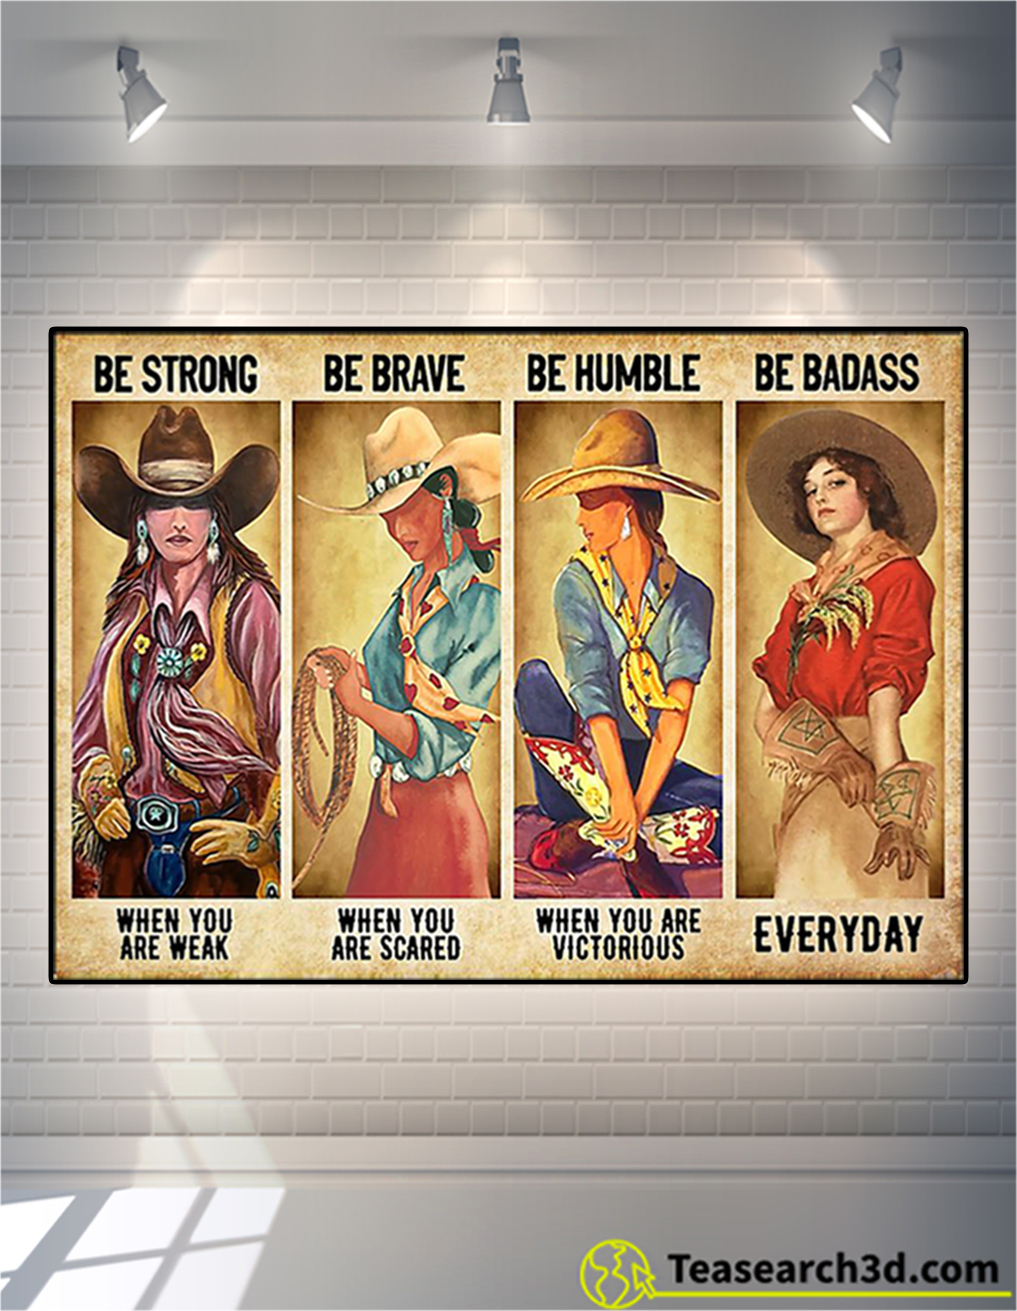 Be strong be brave be humble be badass cowgirl poster